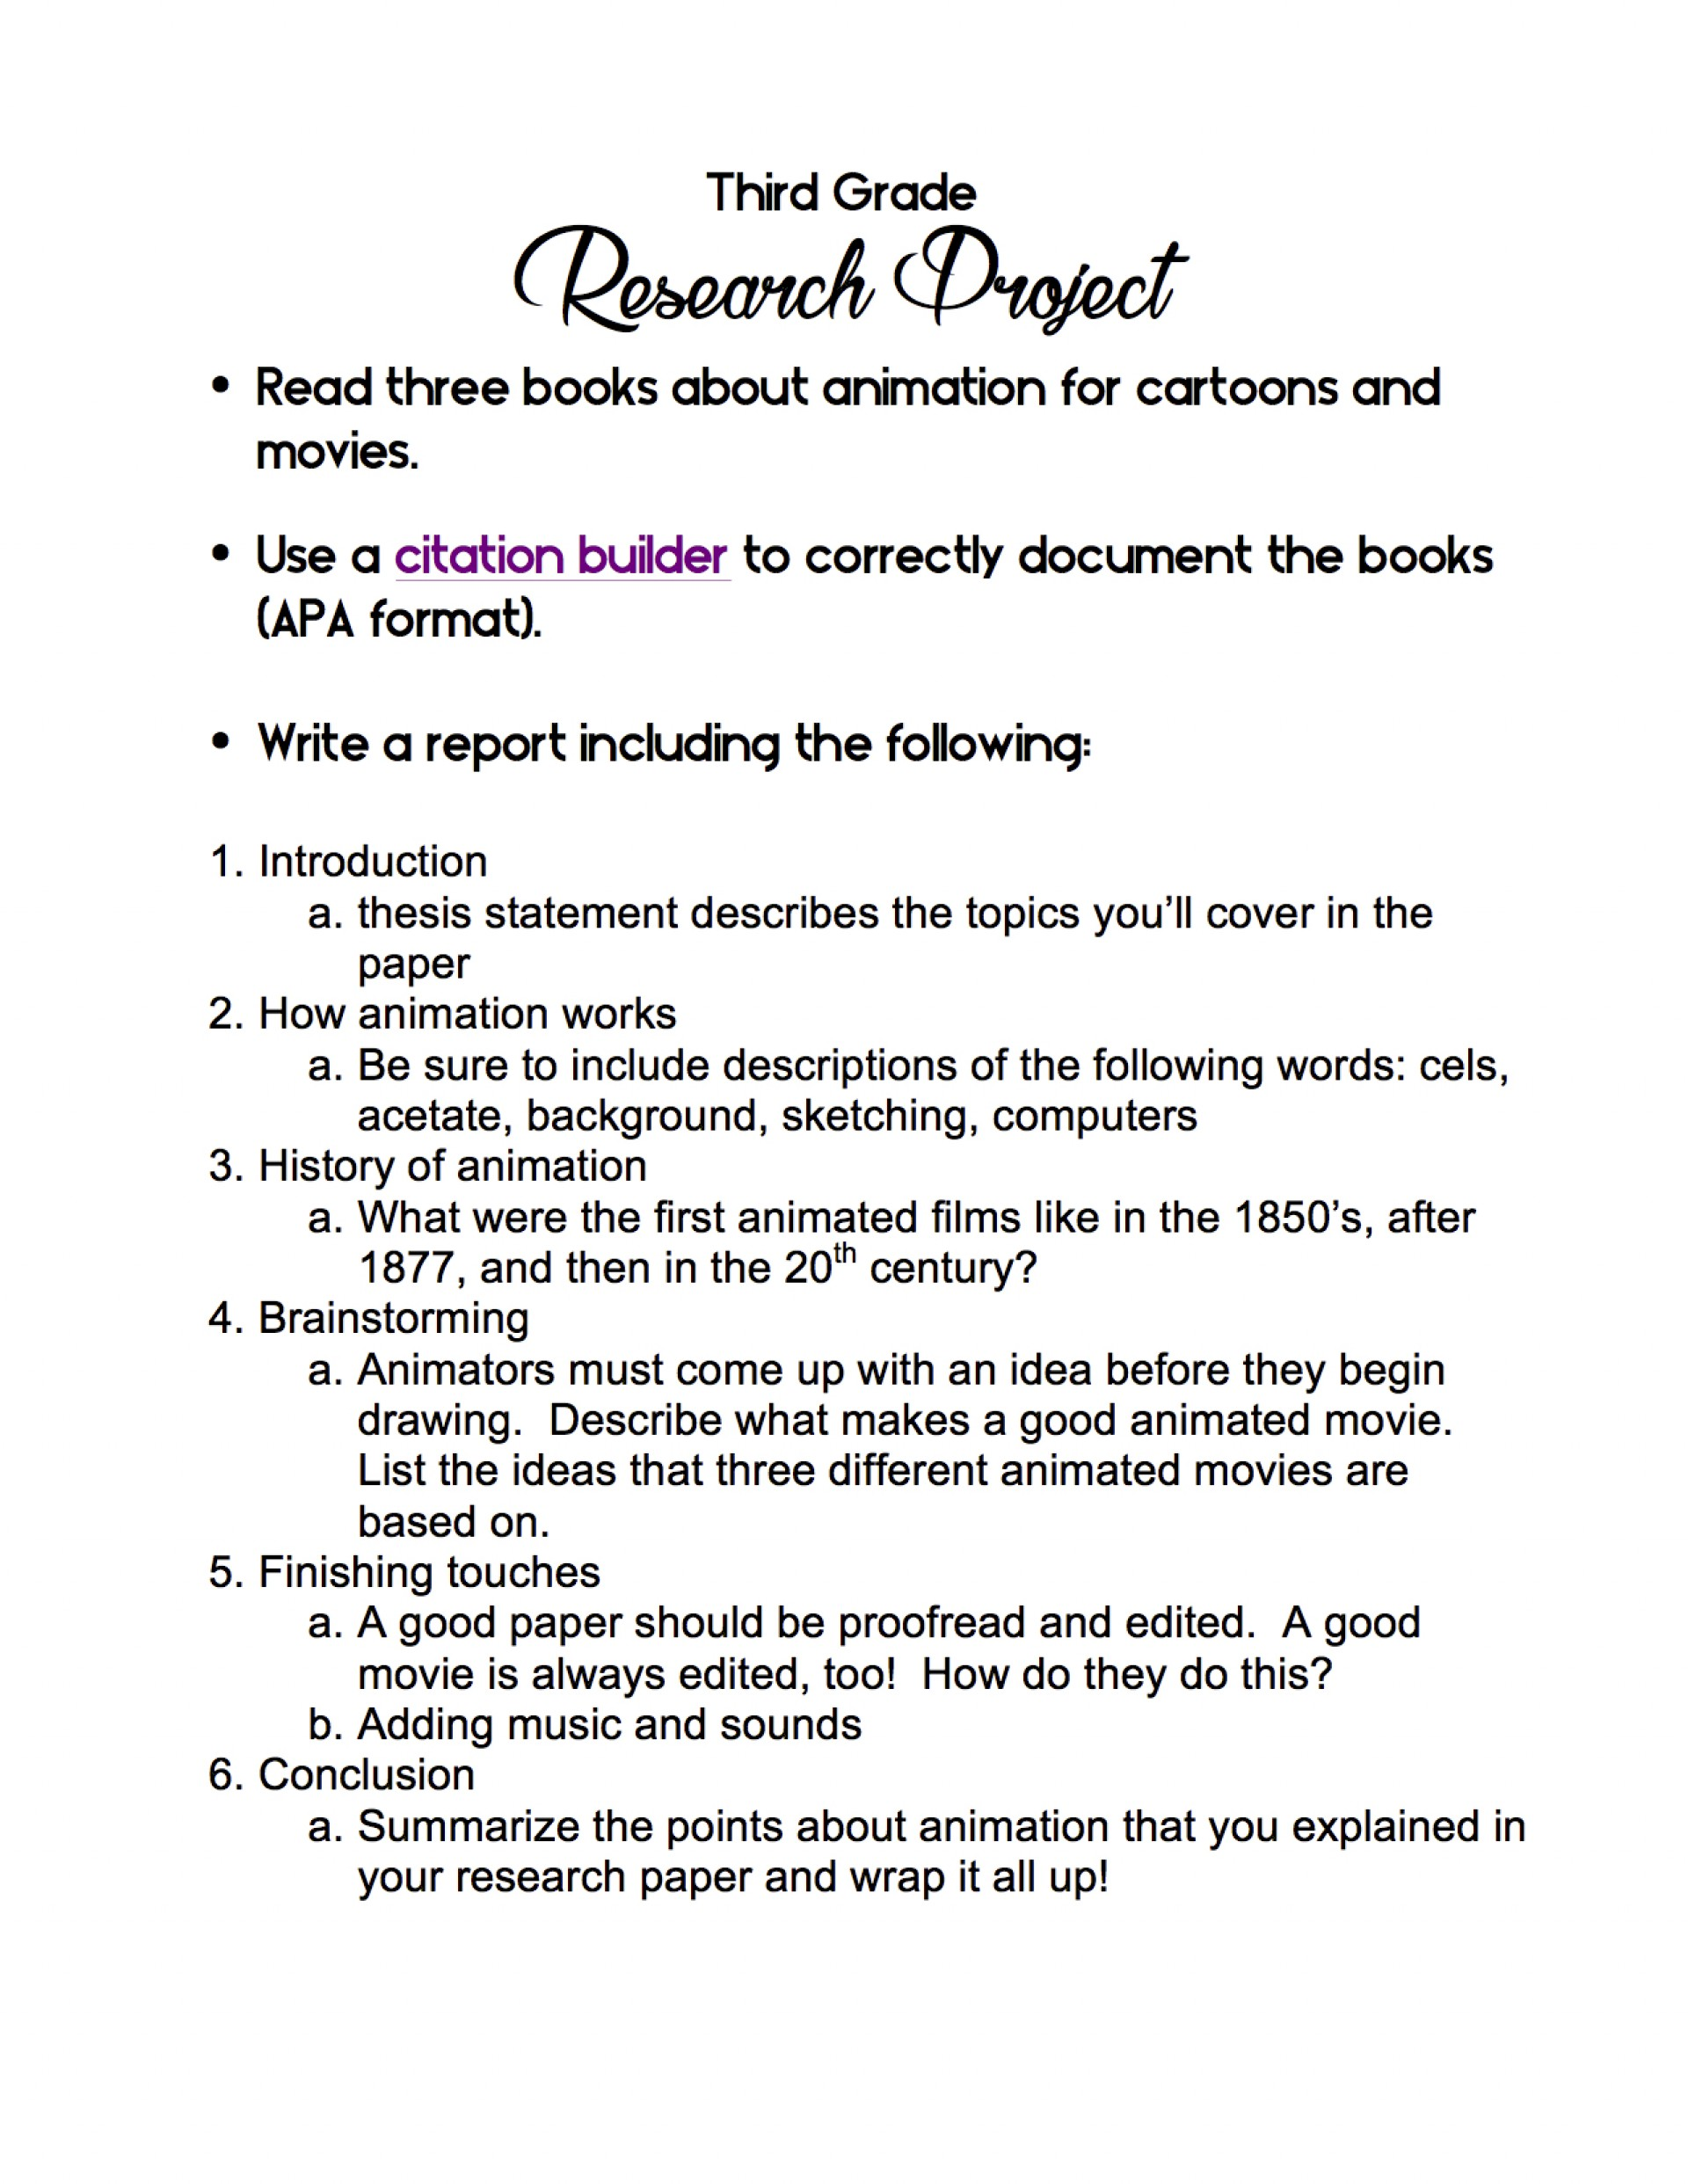 006 3rd Grade Research Project Paper Cancer Topic Archaicawful Ideas Breast 1920